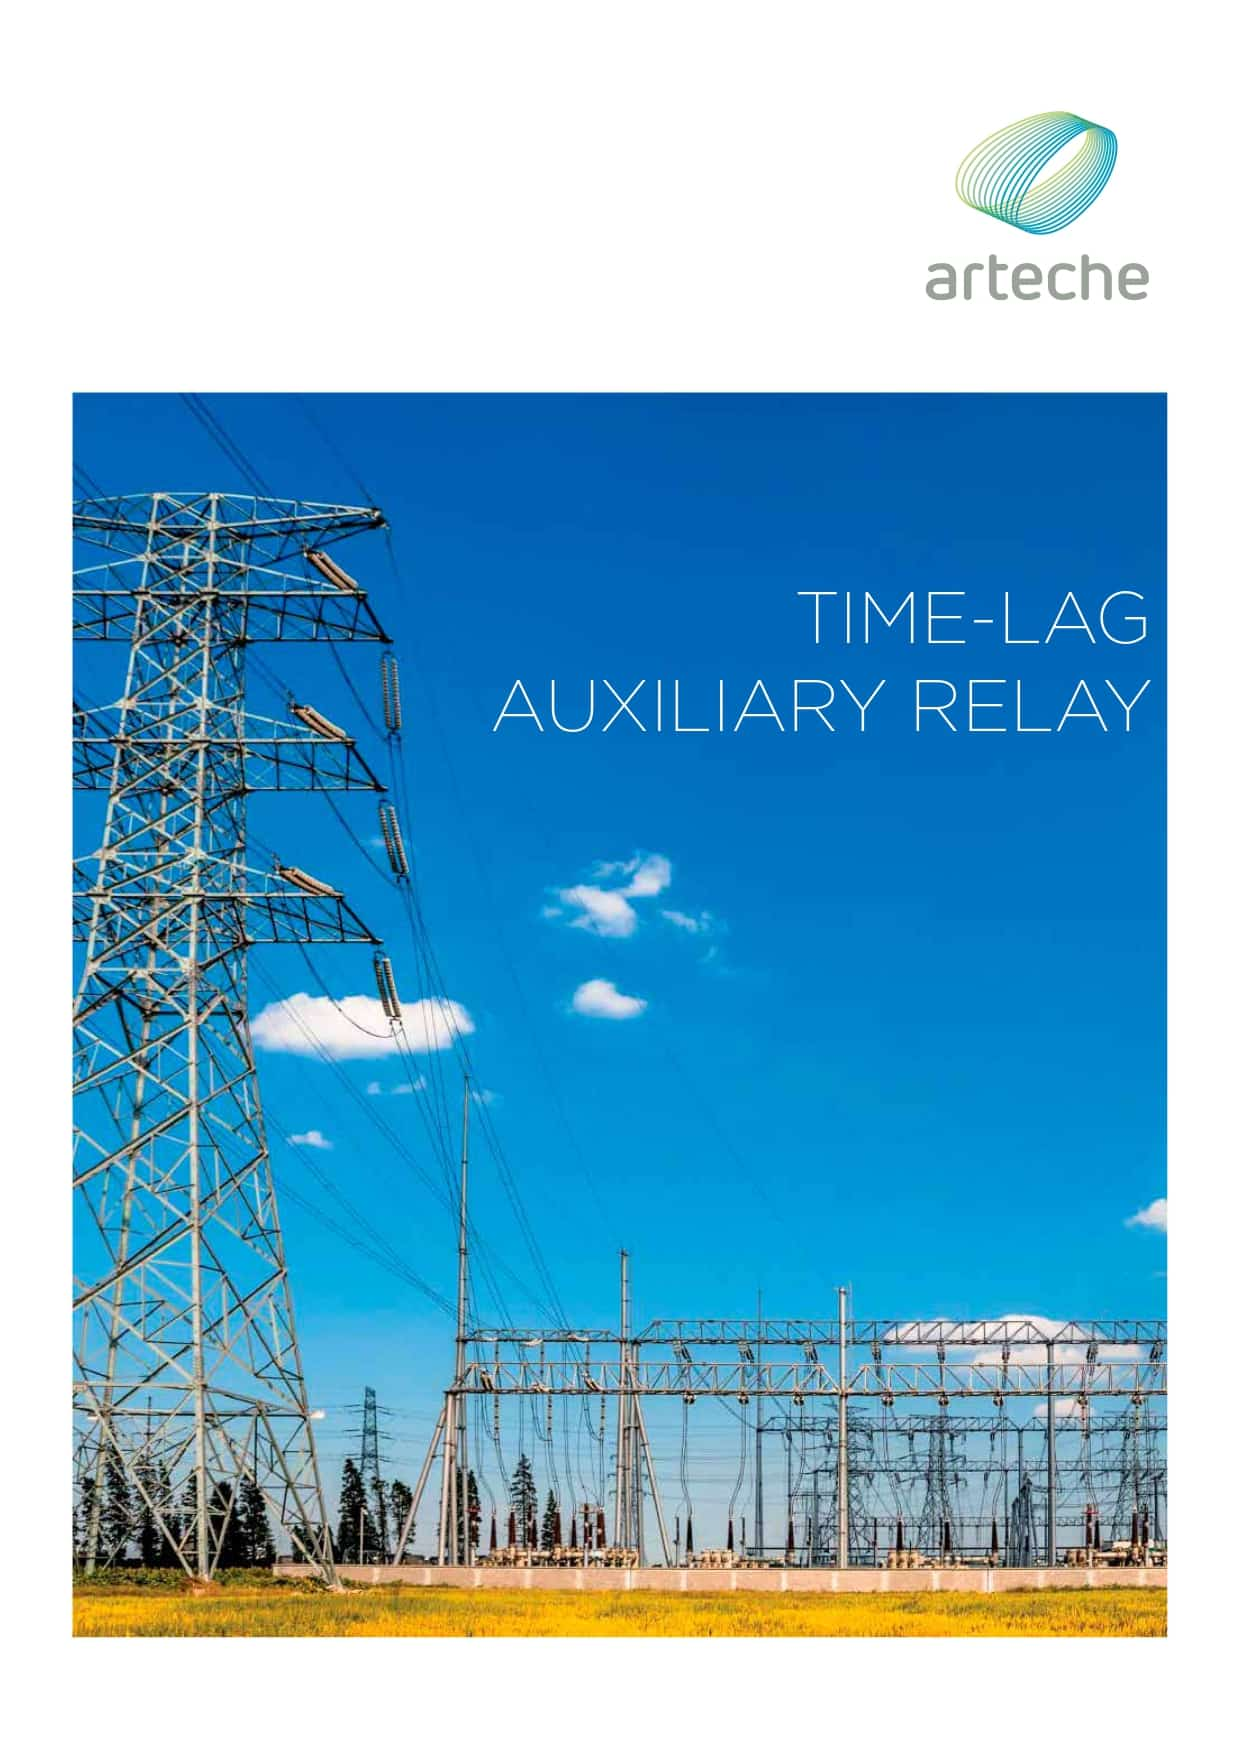 ARTECHE CT TIME LAG AUXILIARY RELAY EN